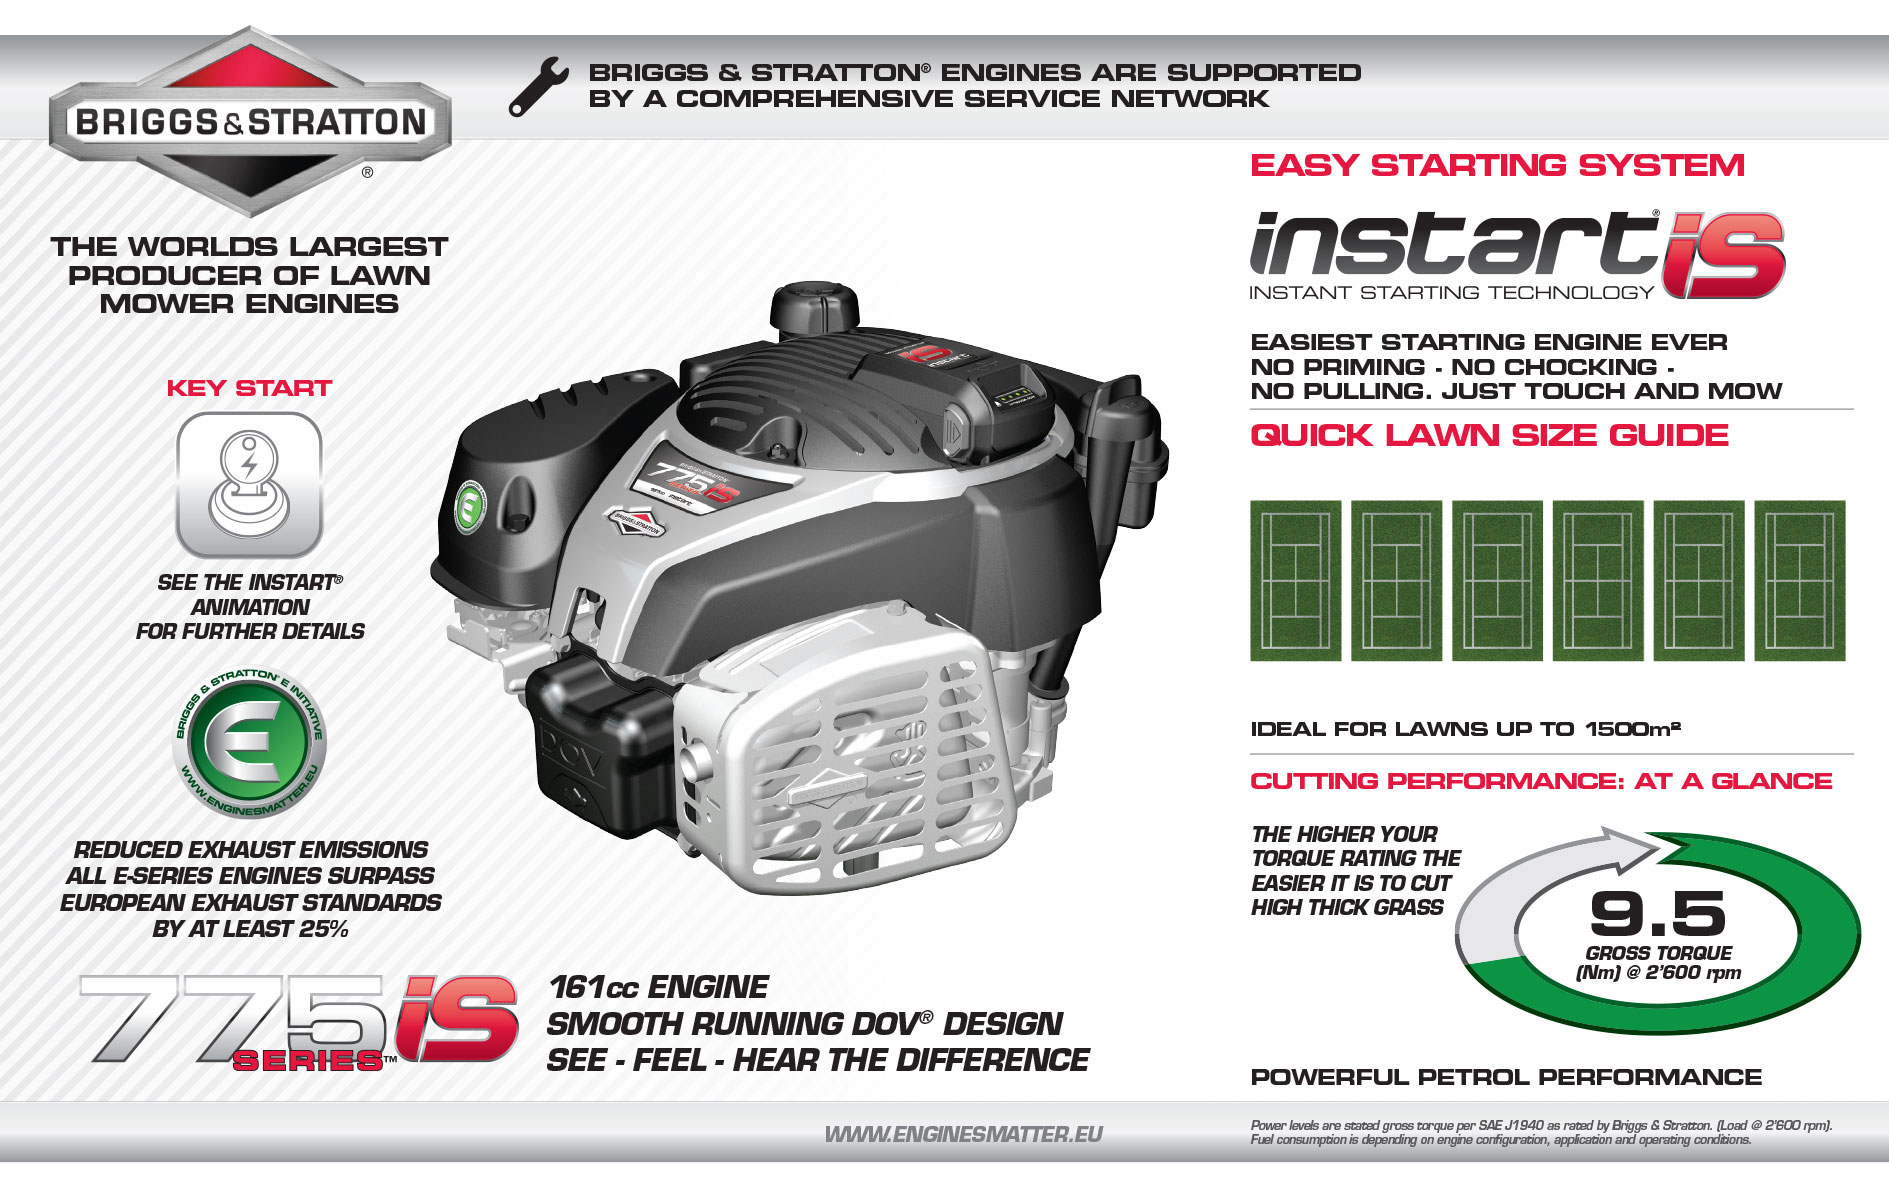 Briggs & Stratton 775is instart engine